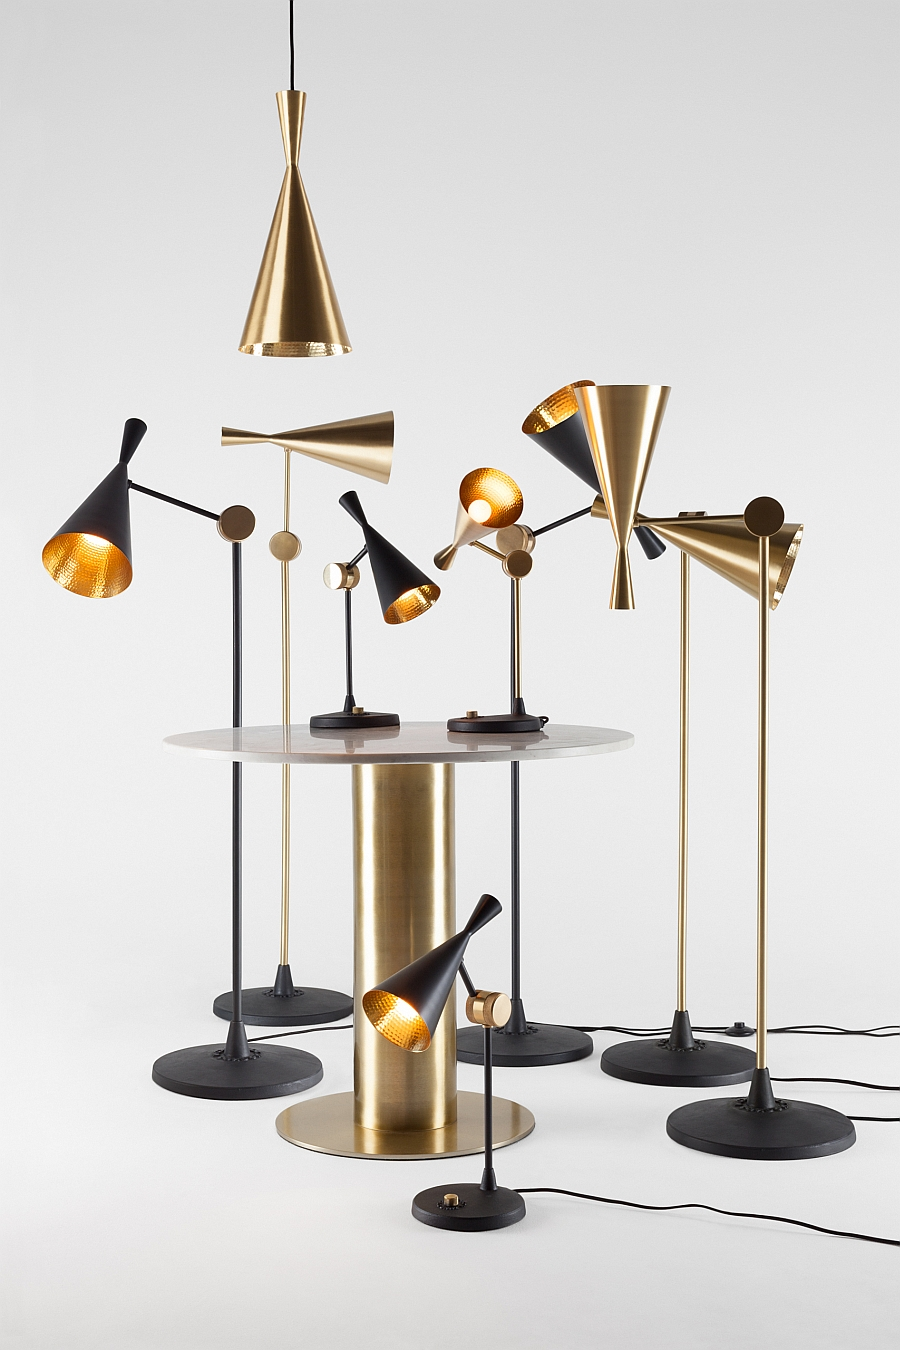 Tom dixon lighting decor beat flood plane and pivot Tom dixon lighting